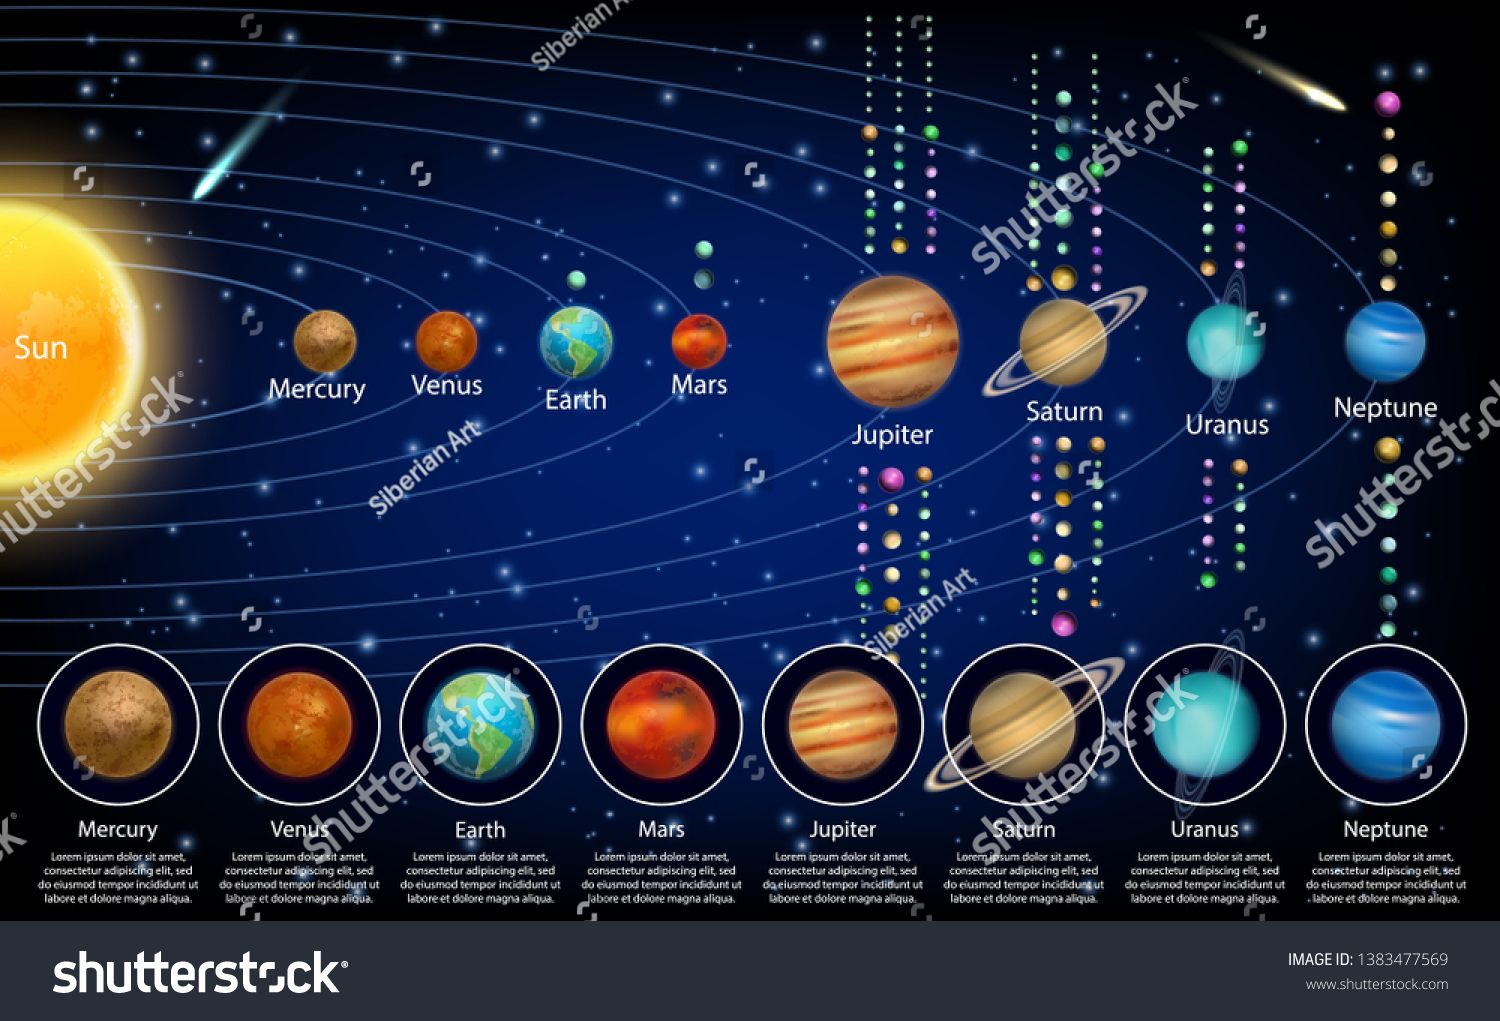 Solar System Planets And Their Moons Diagram Vector Educational Poster Scientific Infographic Presentati In 2020 Solar System Planets Solar System Astronomy Science